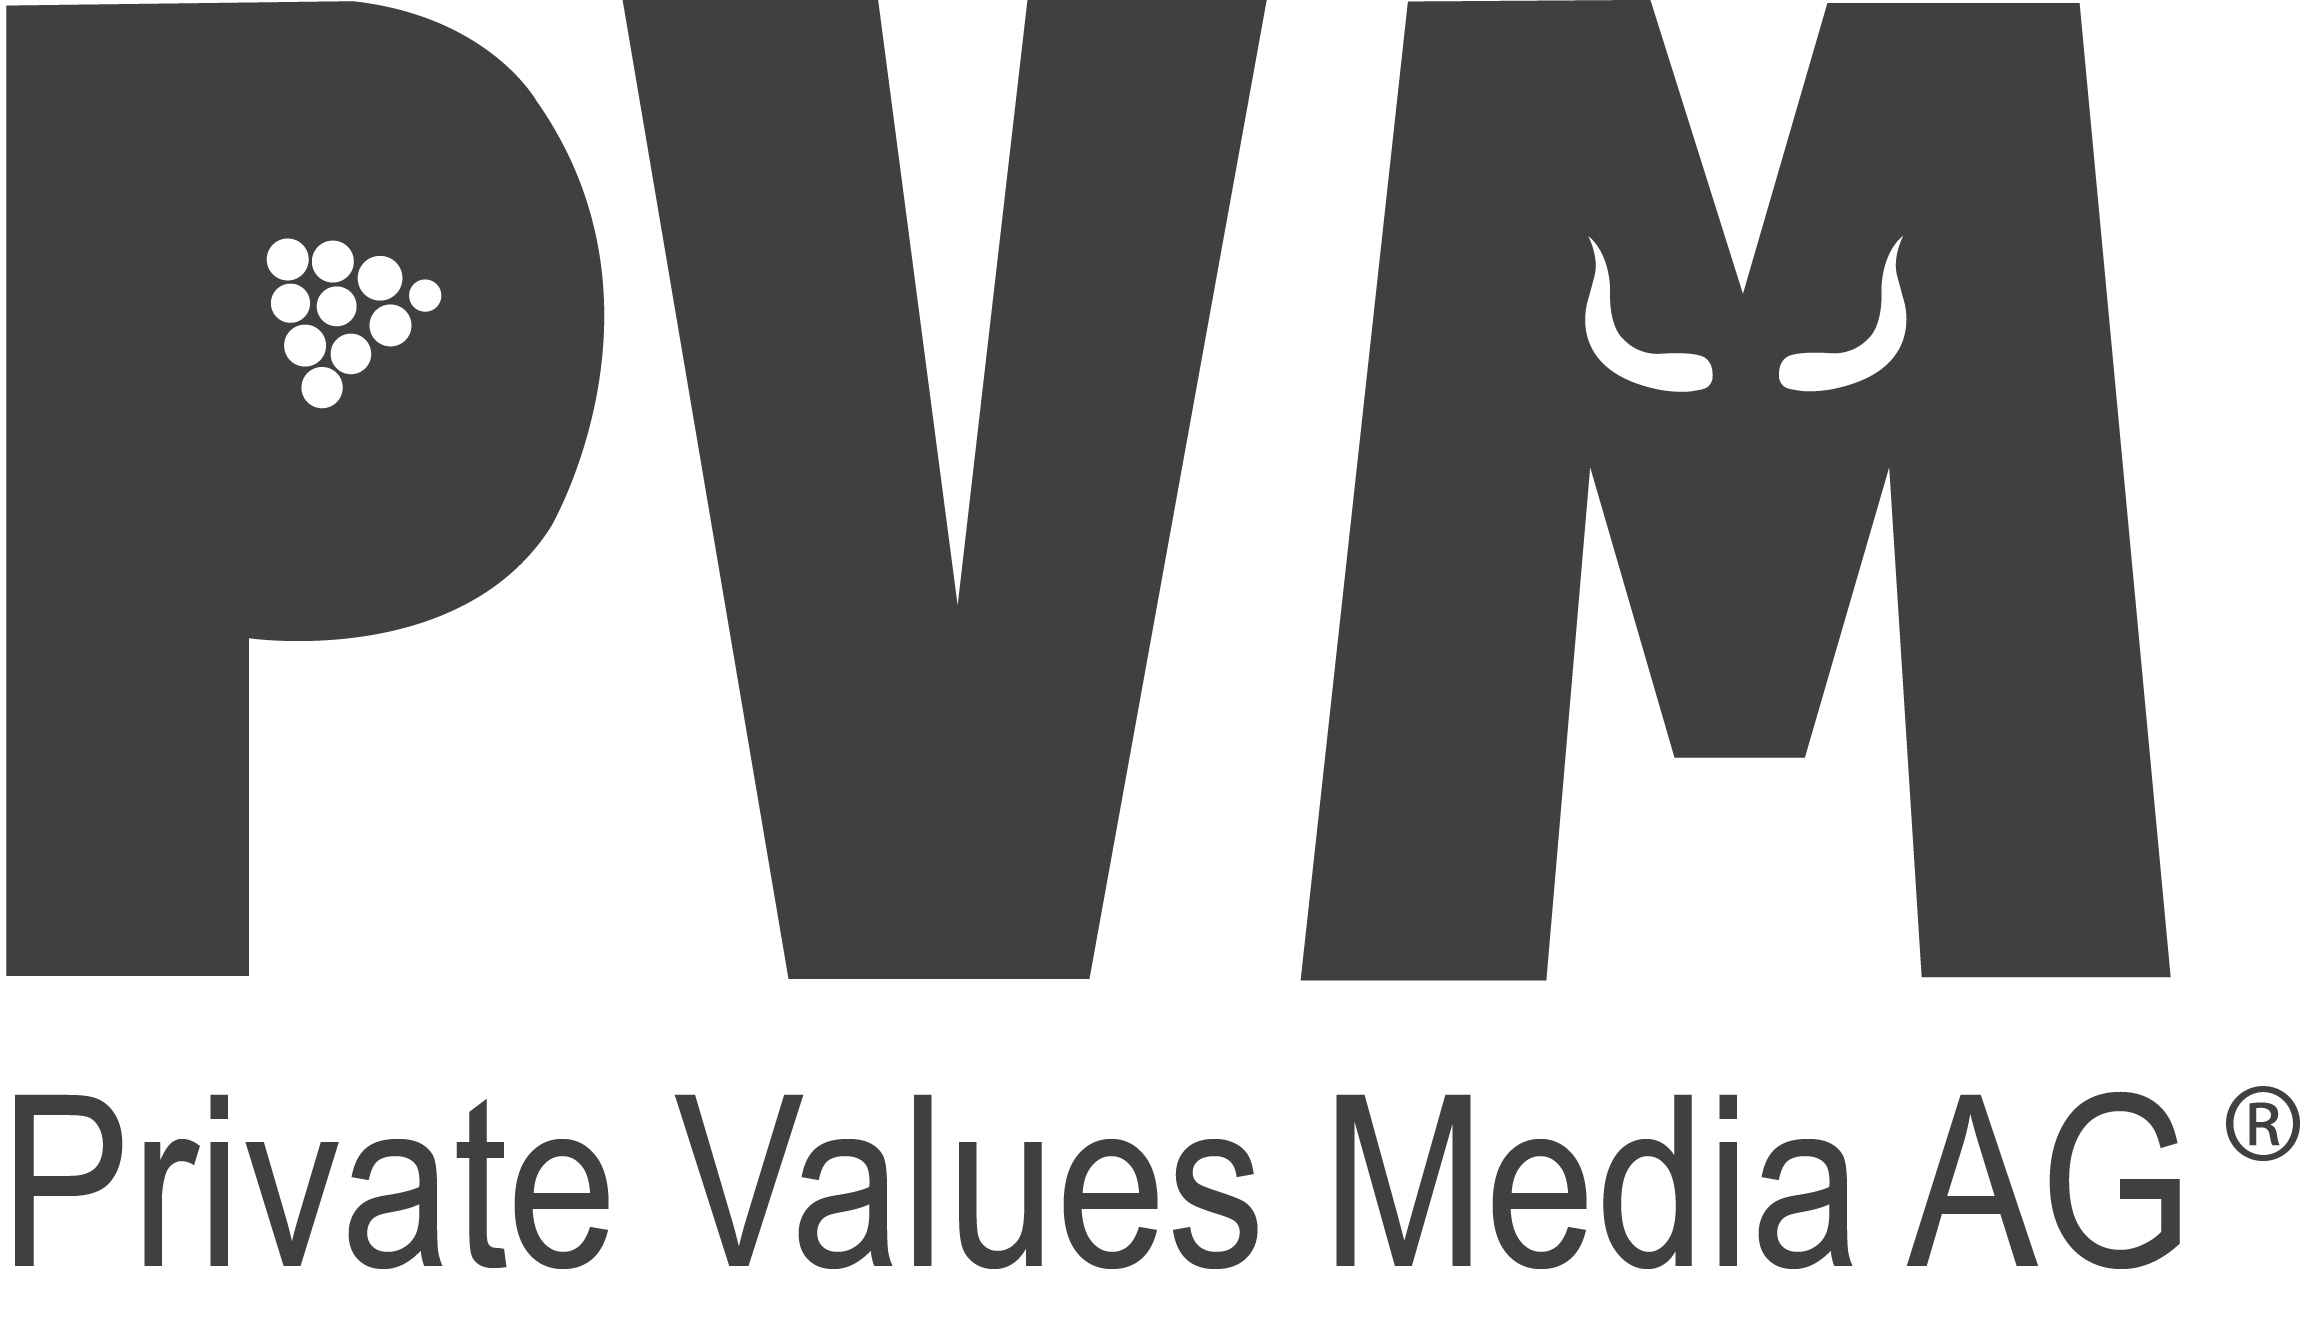 PVM - Private Values Media